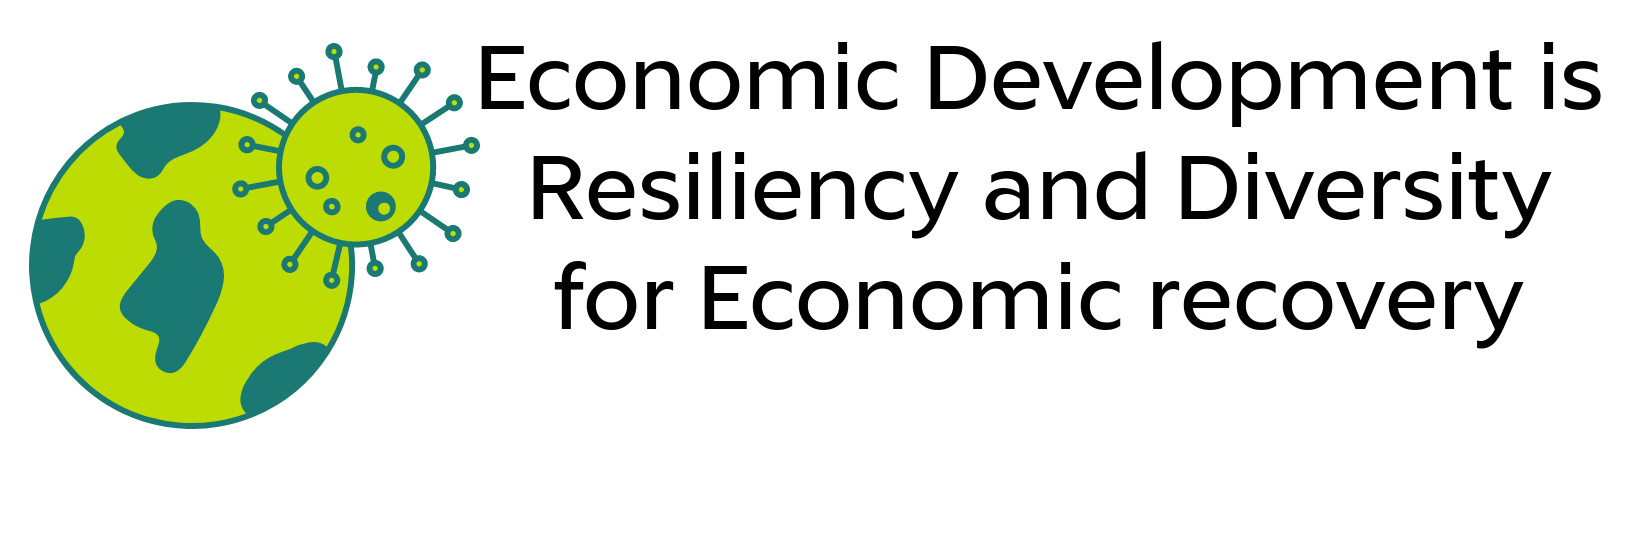 Economic Development is Resiliency and Diversity for Economic recovery.